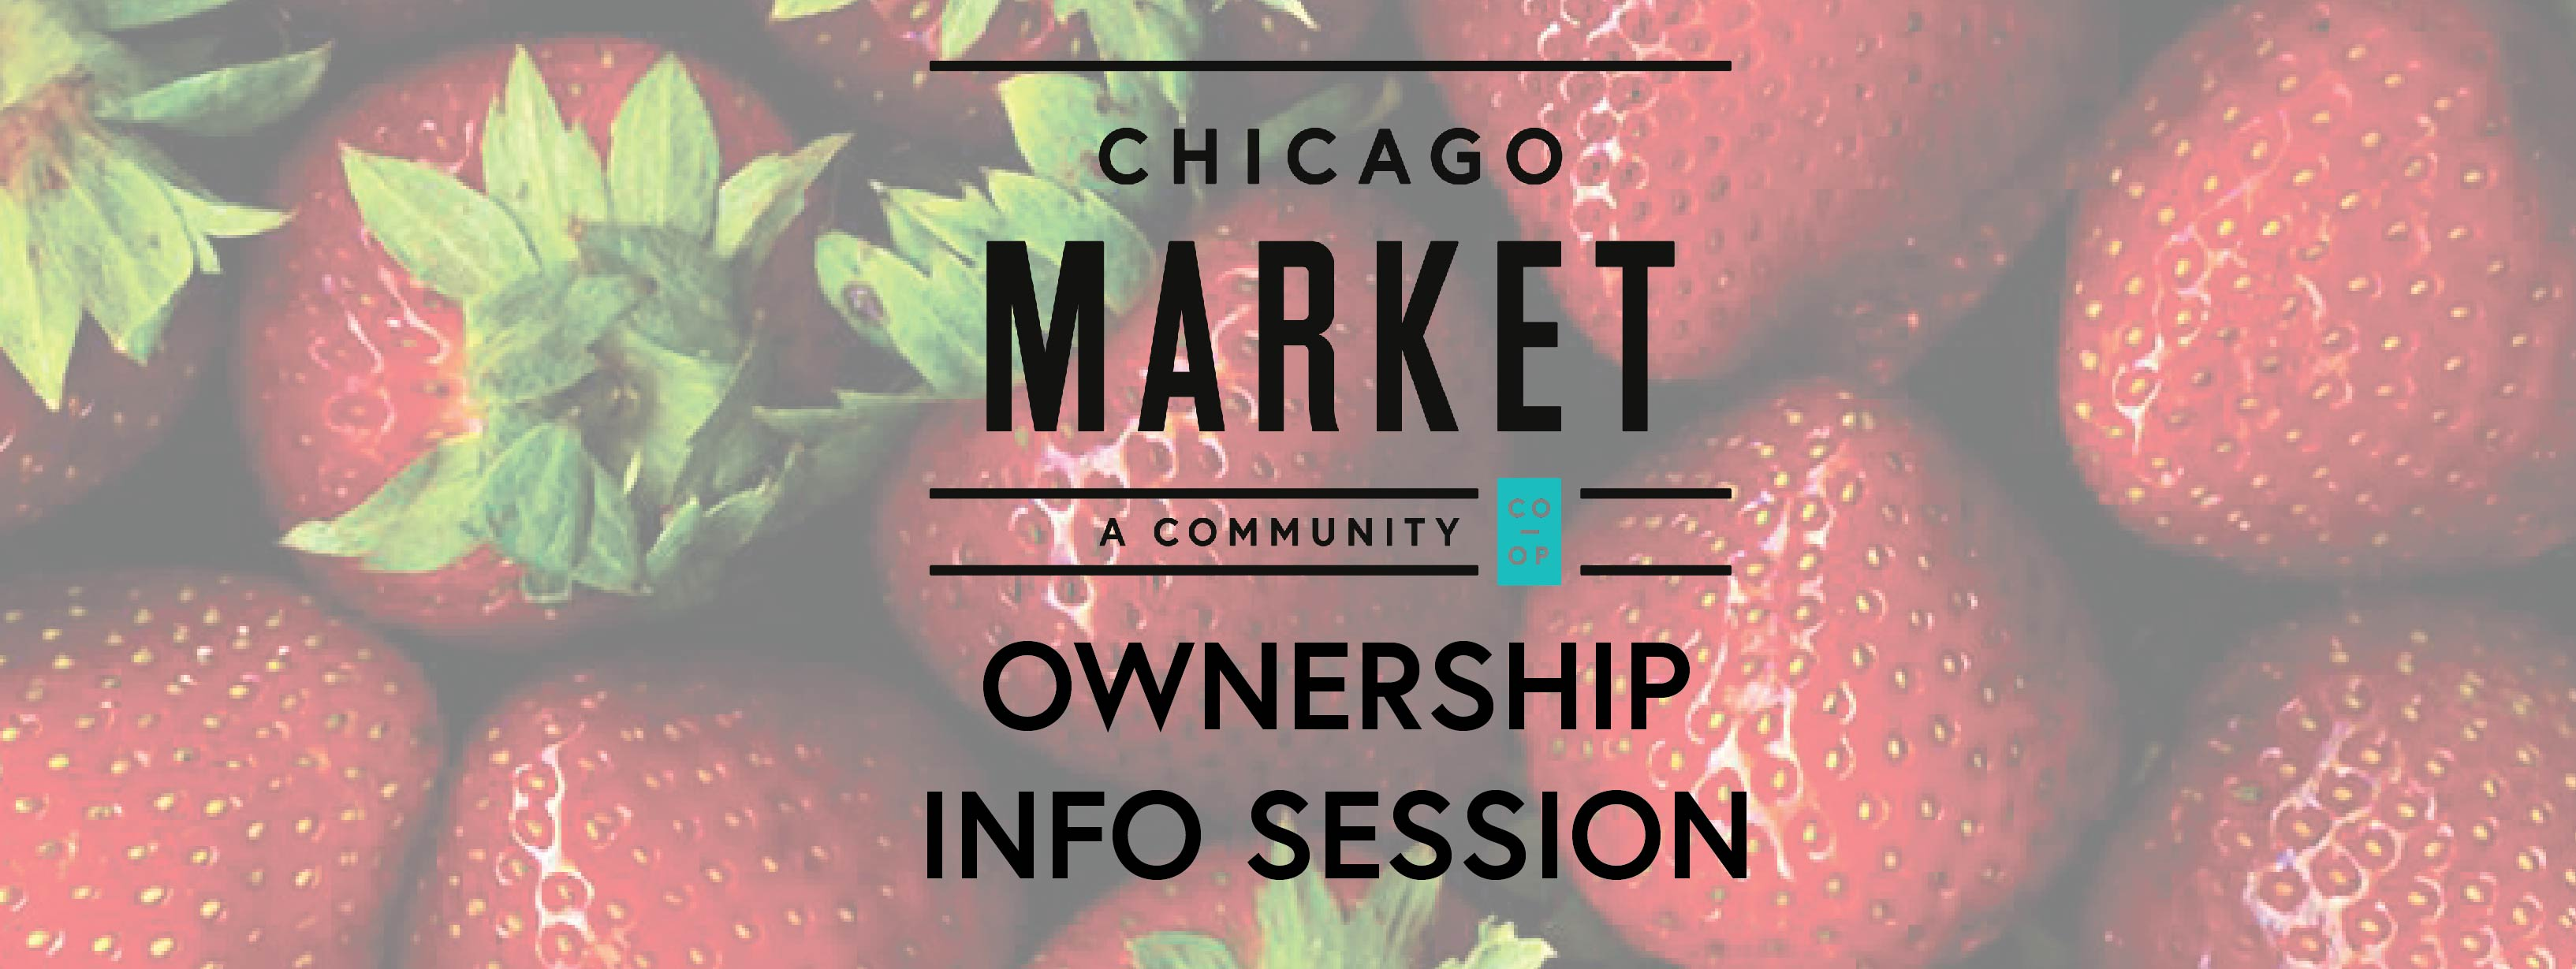 Ownership Info Session